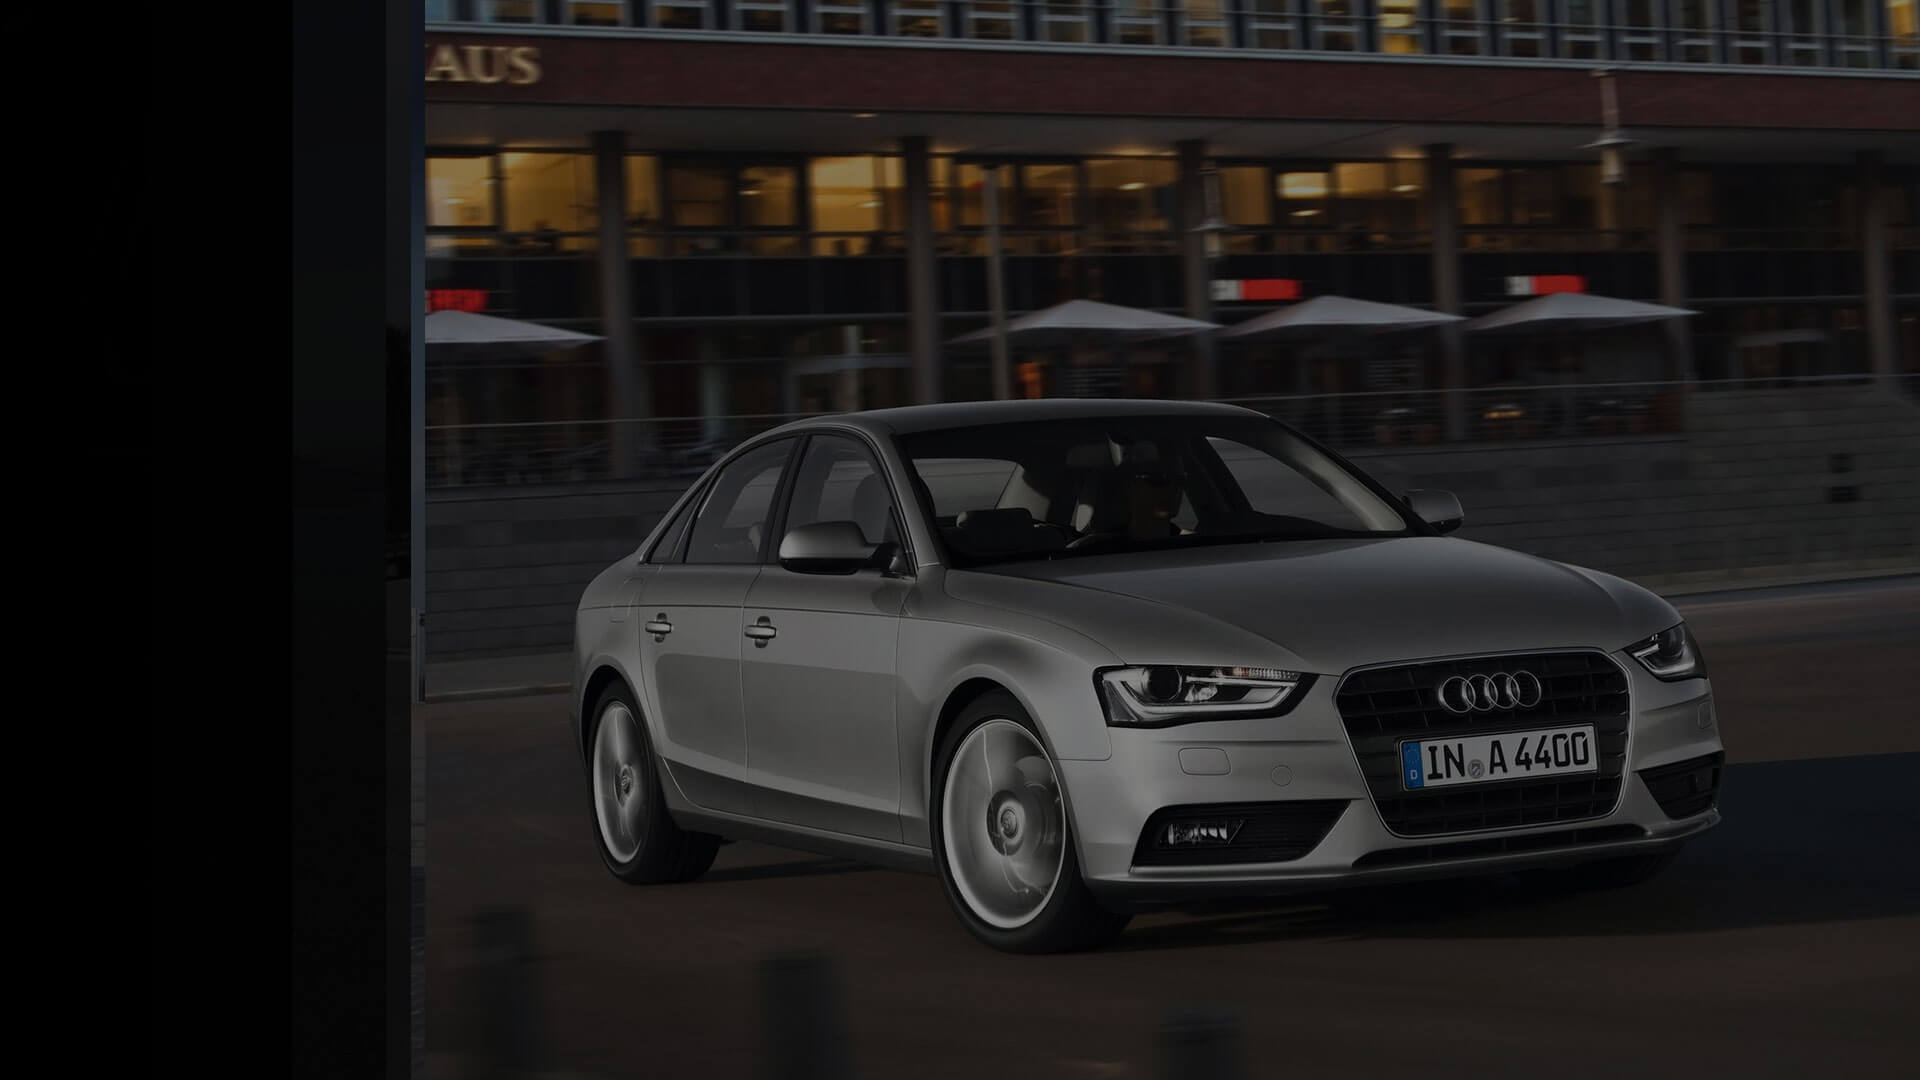 Audi A4 / S4 / RS4 B8 | Carista OBD2 supported vehicles | See what's